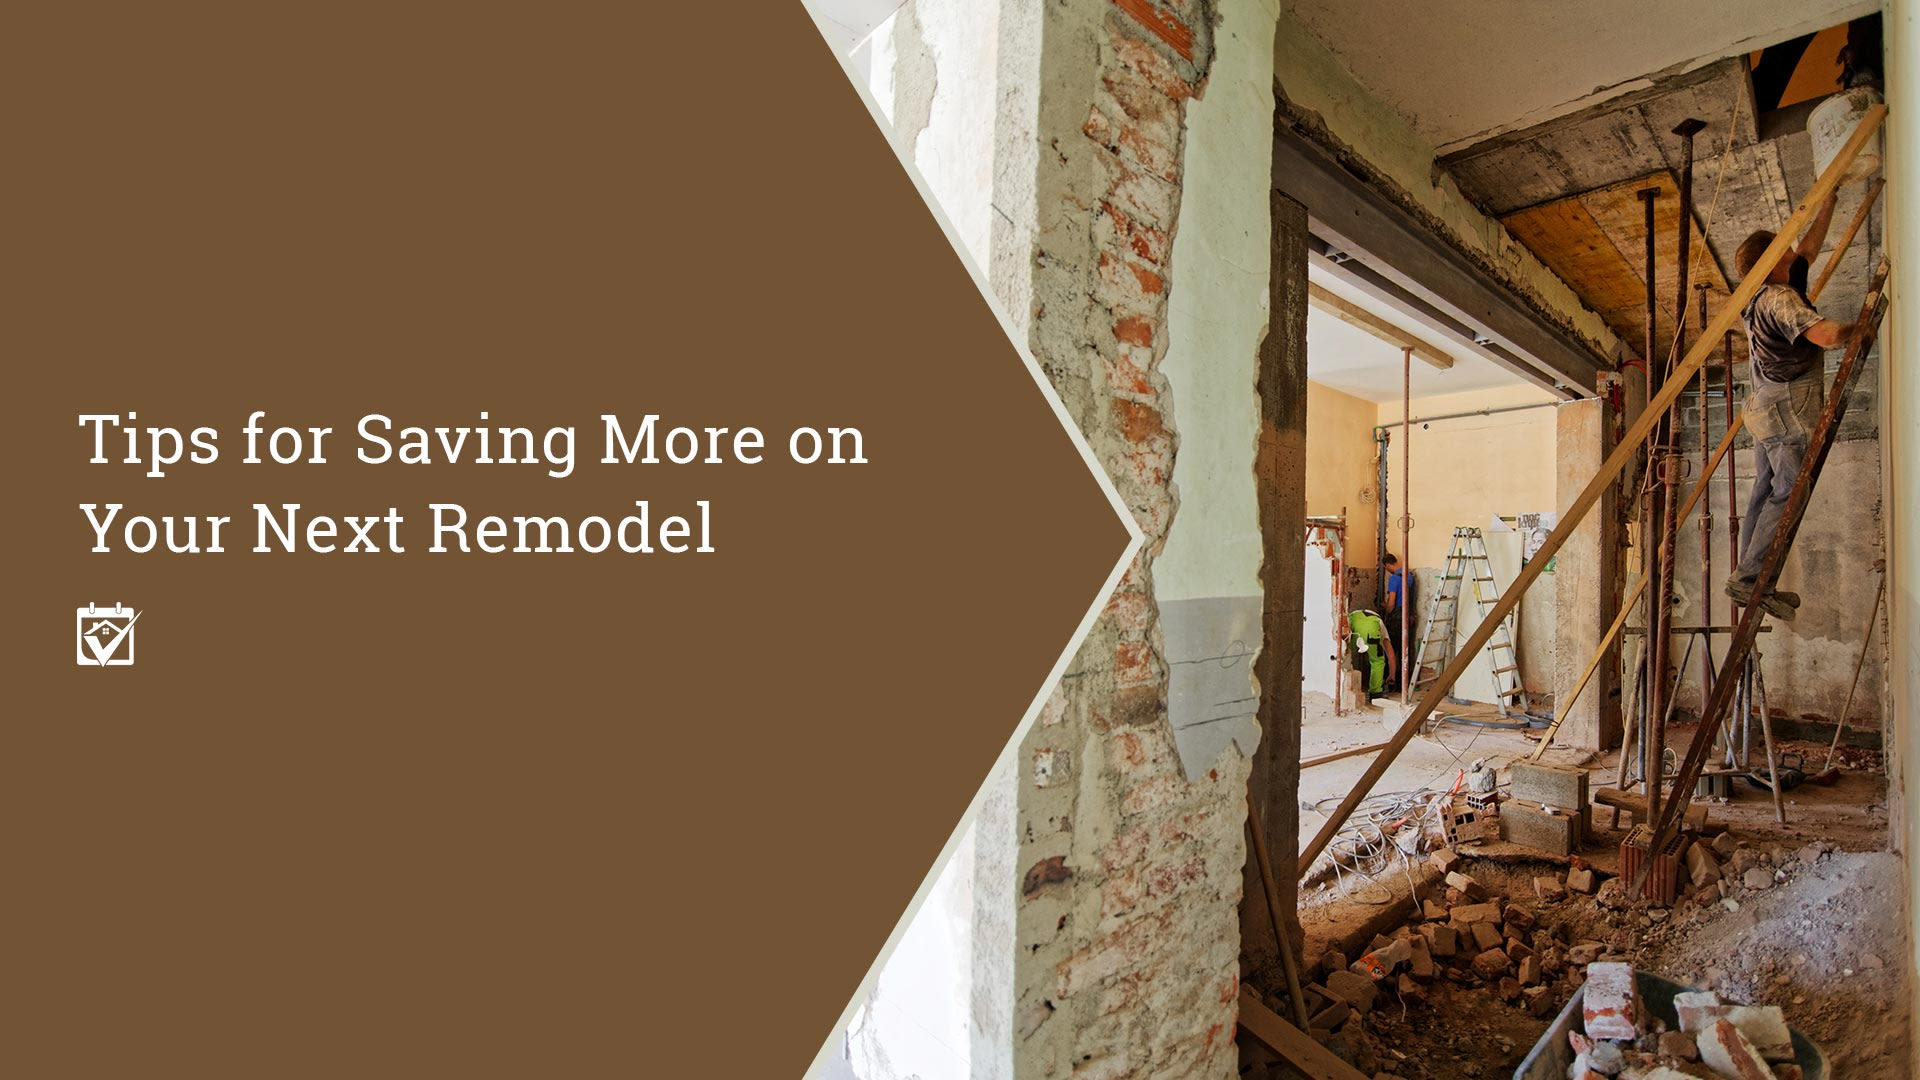 Tips for saving more on your next remodel